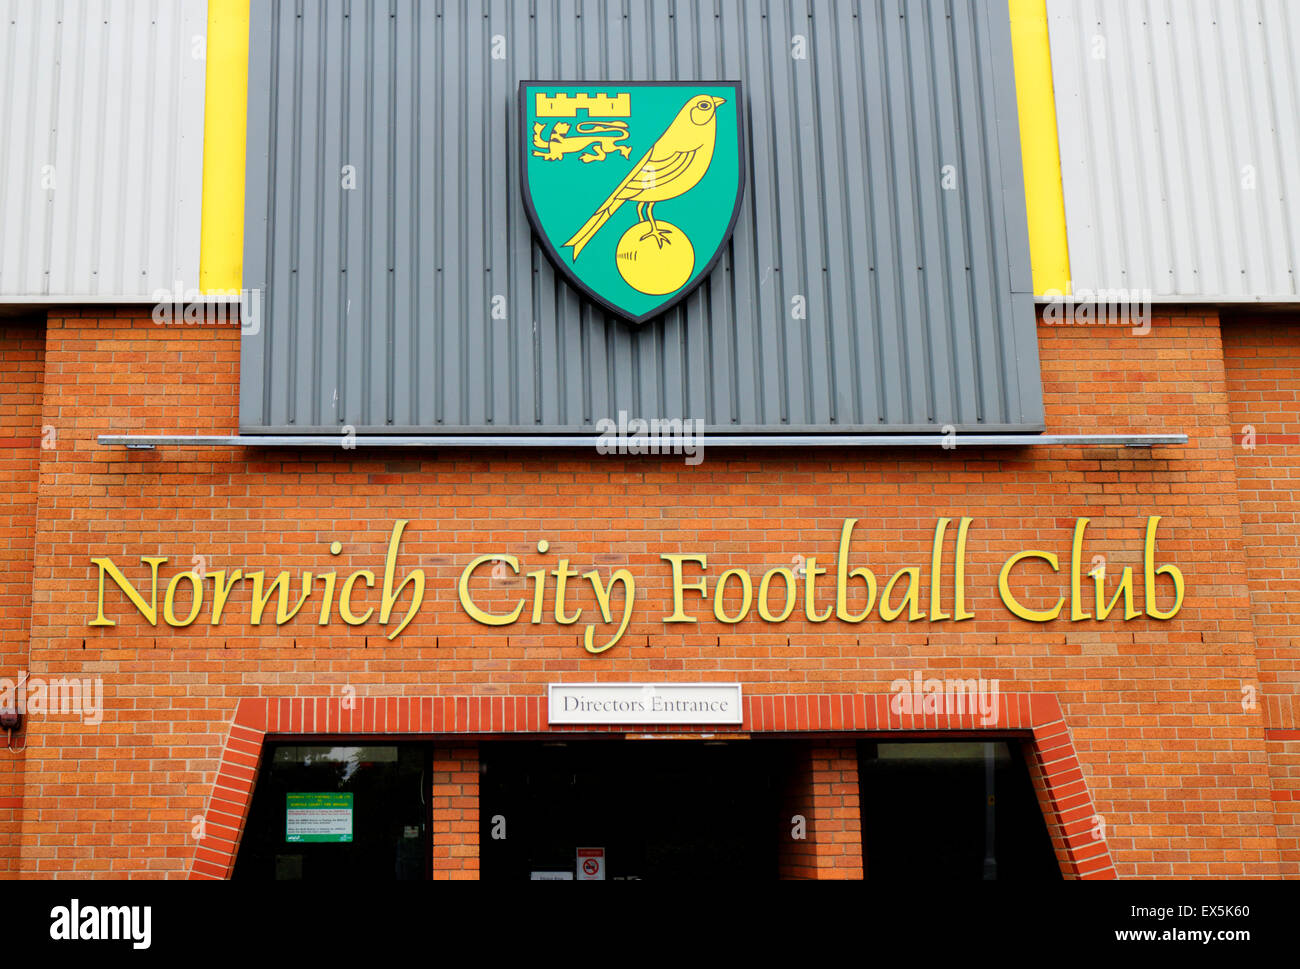 Norwich City Football Club directors entrance and badge at Carrow Road, Norwich, Norfolk, England. - Stock Image